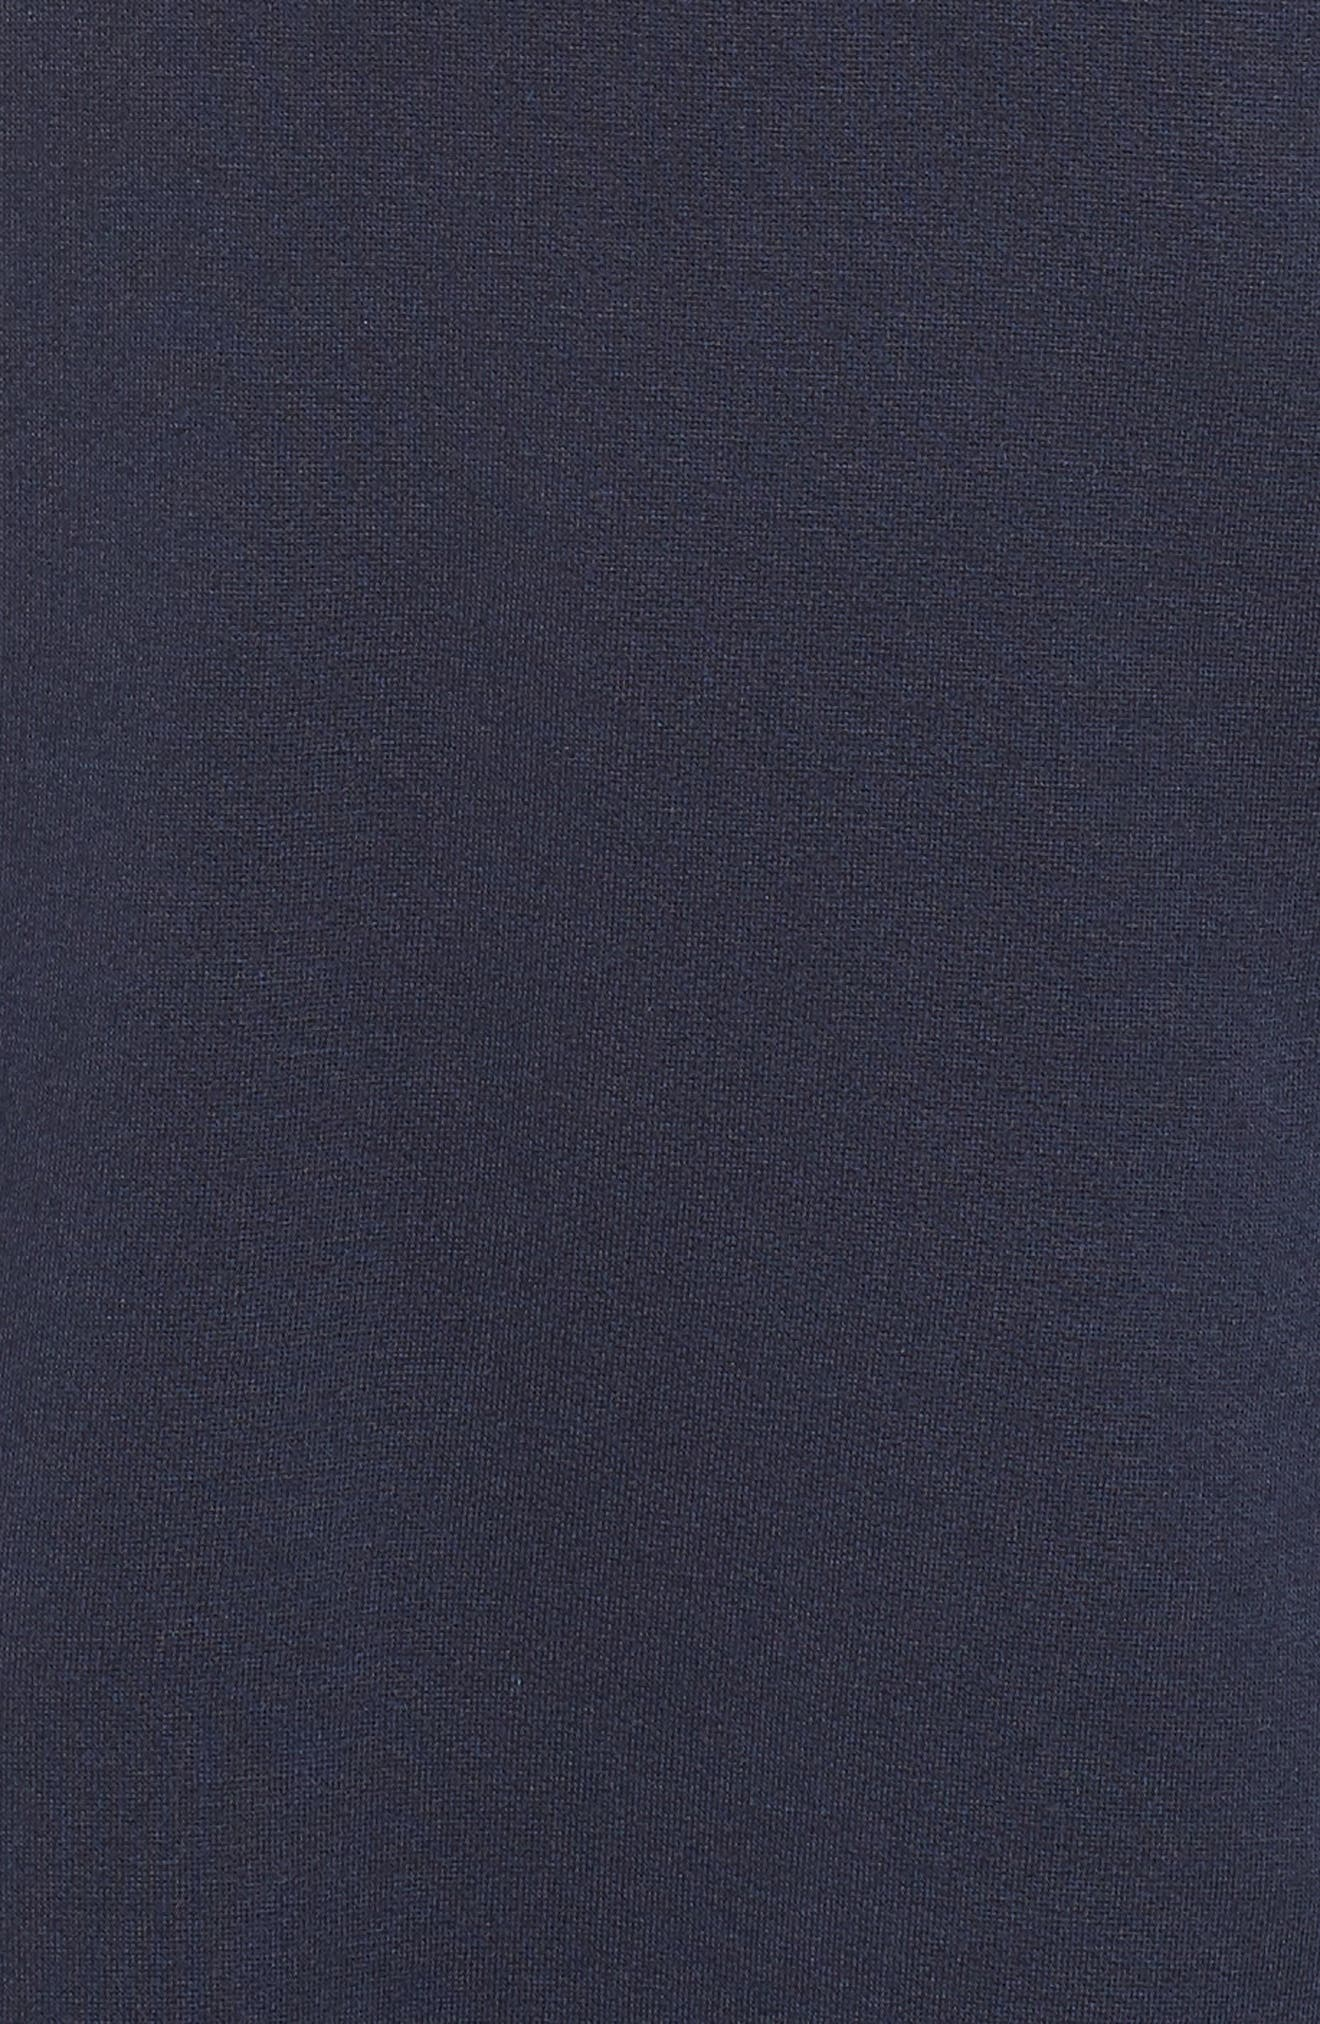 Warm-Up Pullover,                             Alternate thumbnail 6, color,                             INDIGO